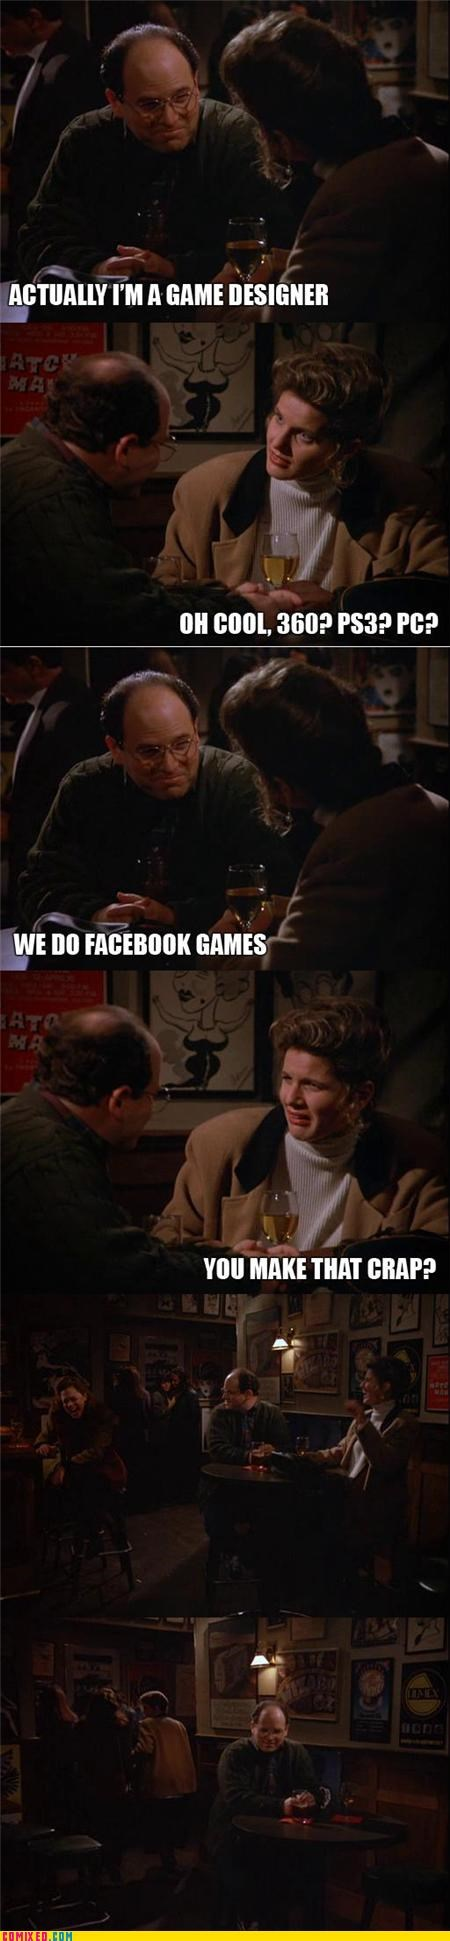 art vandelay,best of week,consoles,facebook,PC,seinfeld,TV,video games